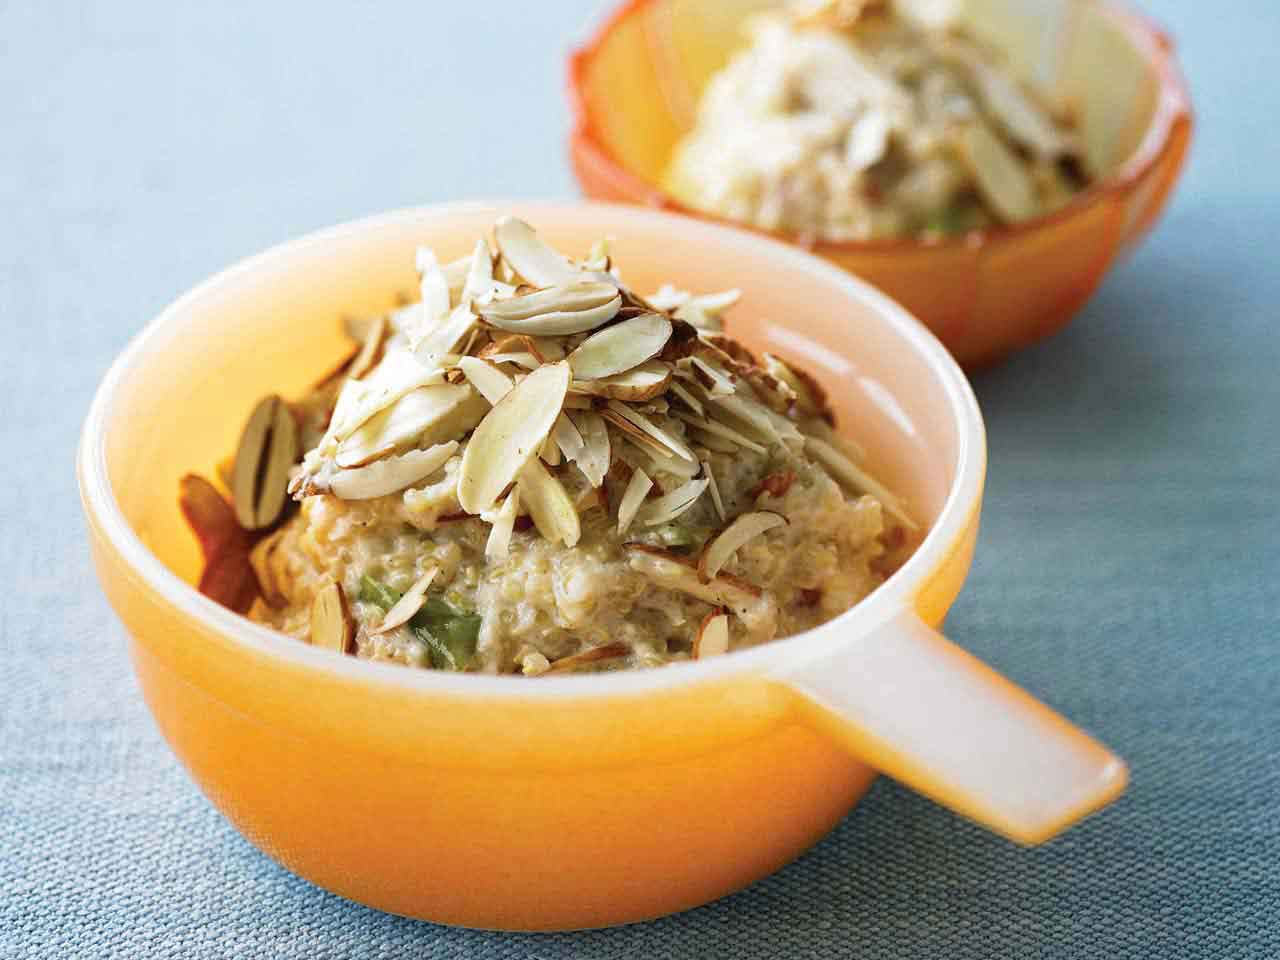 Chilled apple, pear and quinoa porridge with raw almonds